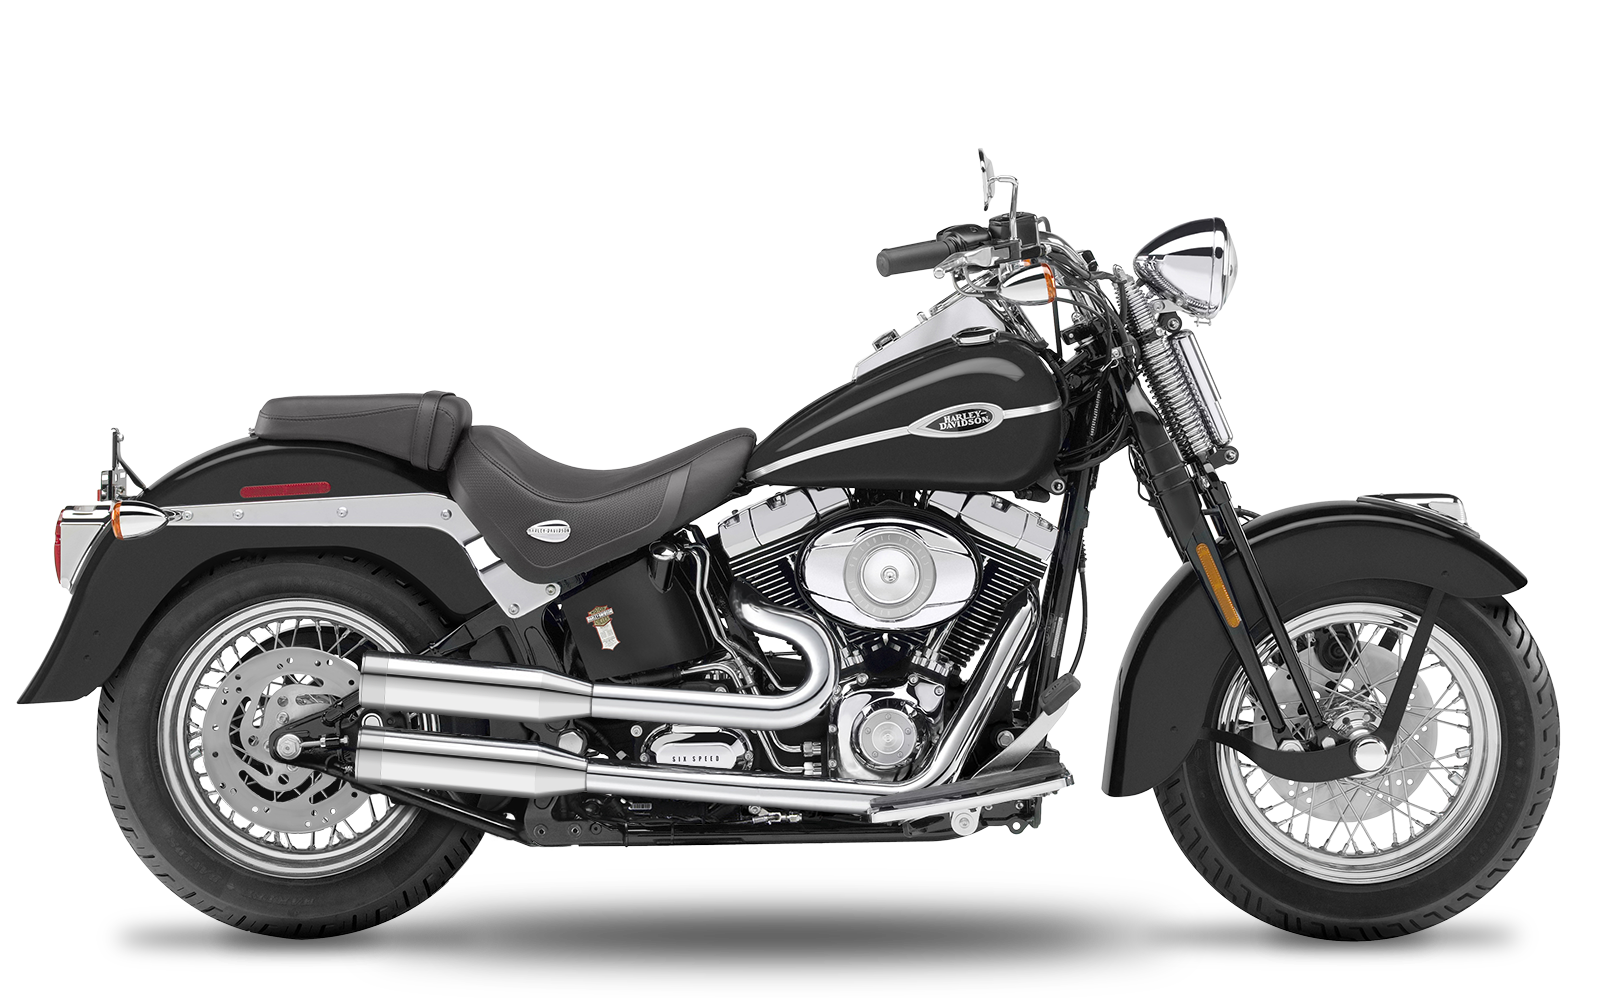 Softail - Springer Classic - TC96 - 2007-2011 - Complete systems